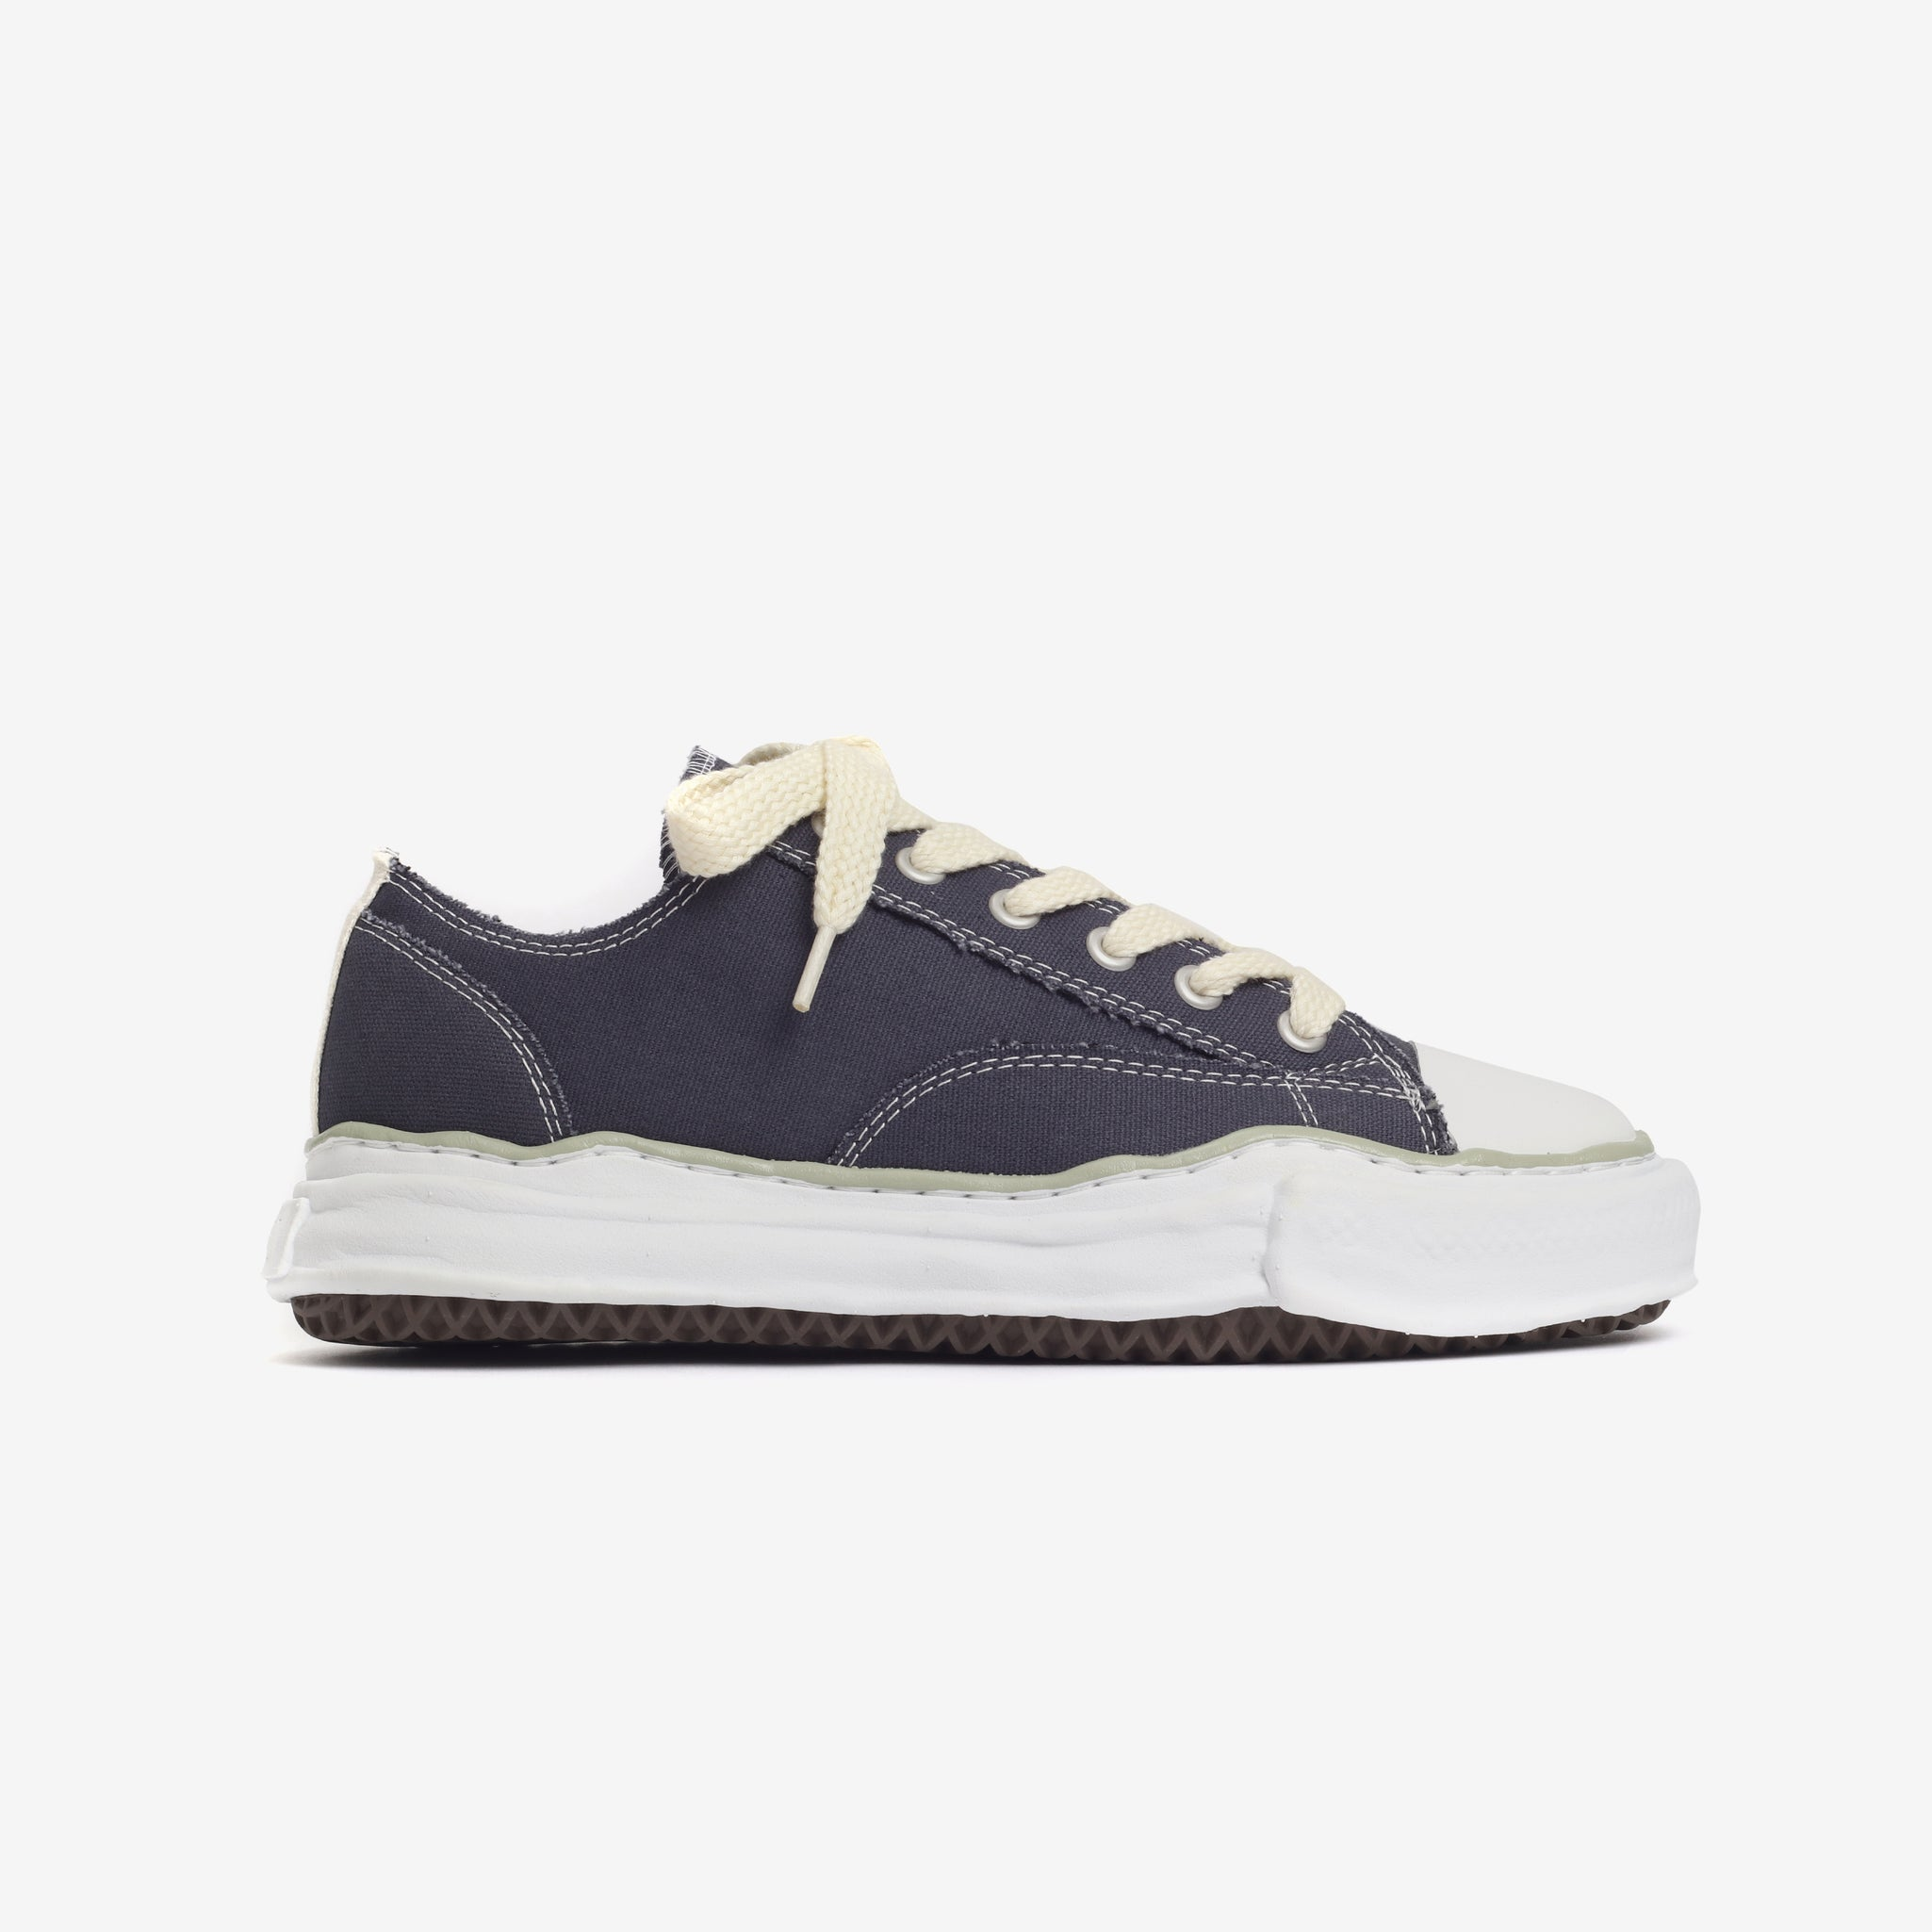 Nigel Cabourn x Low Mihara Shoes